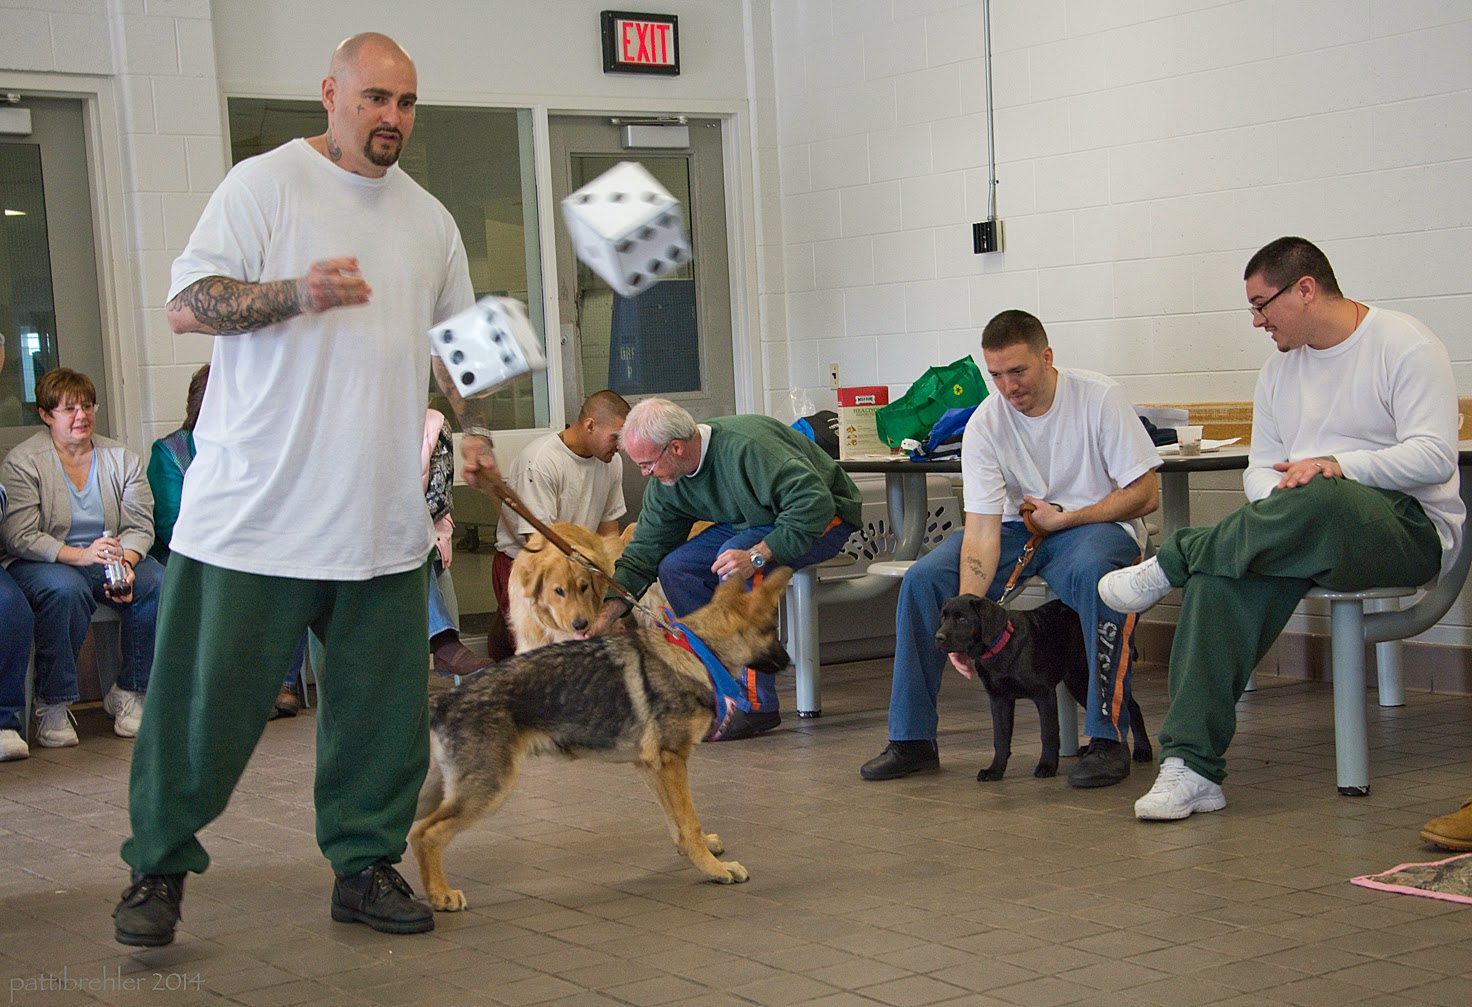 A bald man with a goatee wearing green pants and a white t-shirt has just tossed a pair of six inch dice. The dice are out of focus in mid-air in front of him. His left hand is holding the leash of a young german shepherd puppy, who is pulling to the right toward a small black lab. There are two other men sitting on the right side. The first man, wearing blue pants and a white t-shirt, is holding the leash of the black lab, who is standing between his legs looking at the german shepherd. The man's right hand is reaching toward the puppy's chest. The man on the far right is wearing green pants and a long sleeved white t-shirt and glasses; he is looking down at the puppy and he has his left leg crossed over his right leg at the ankle. There are several other people sitting behind the man standing.